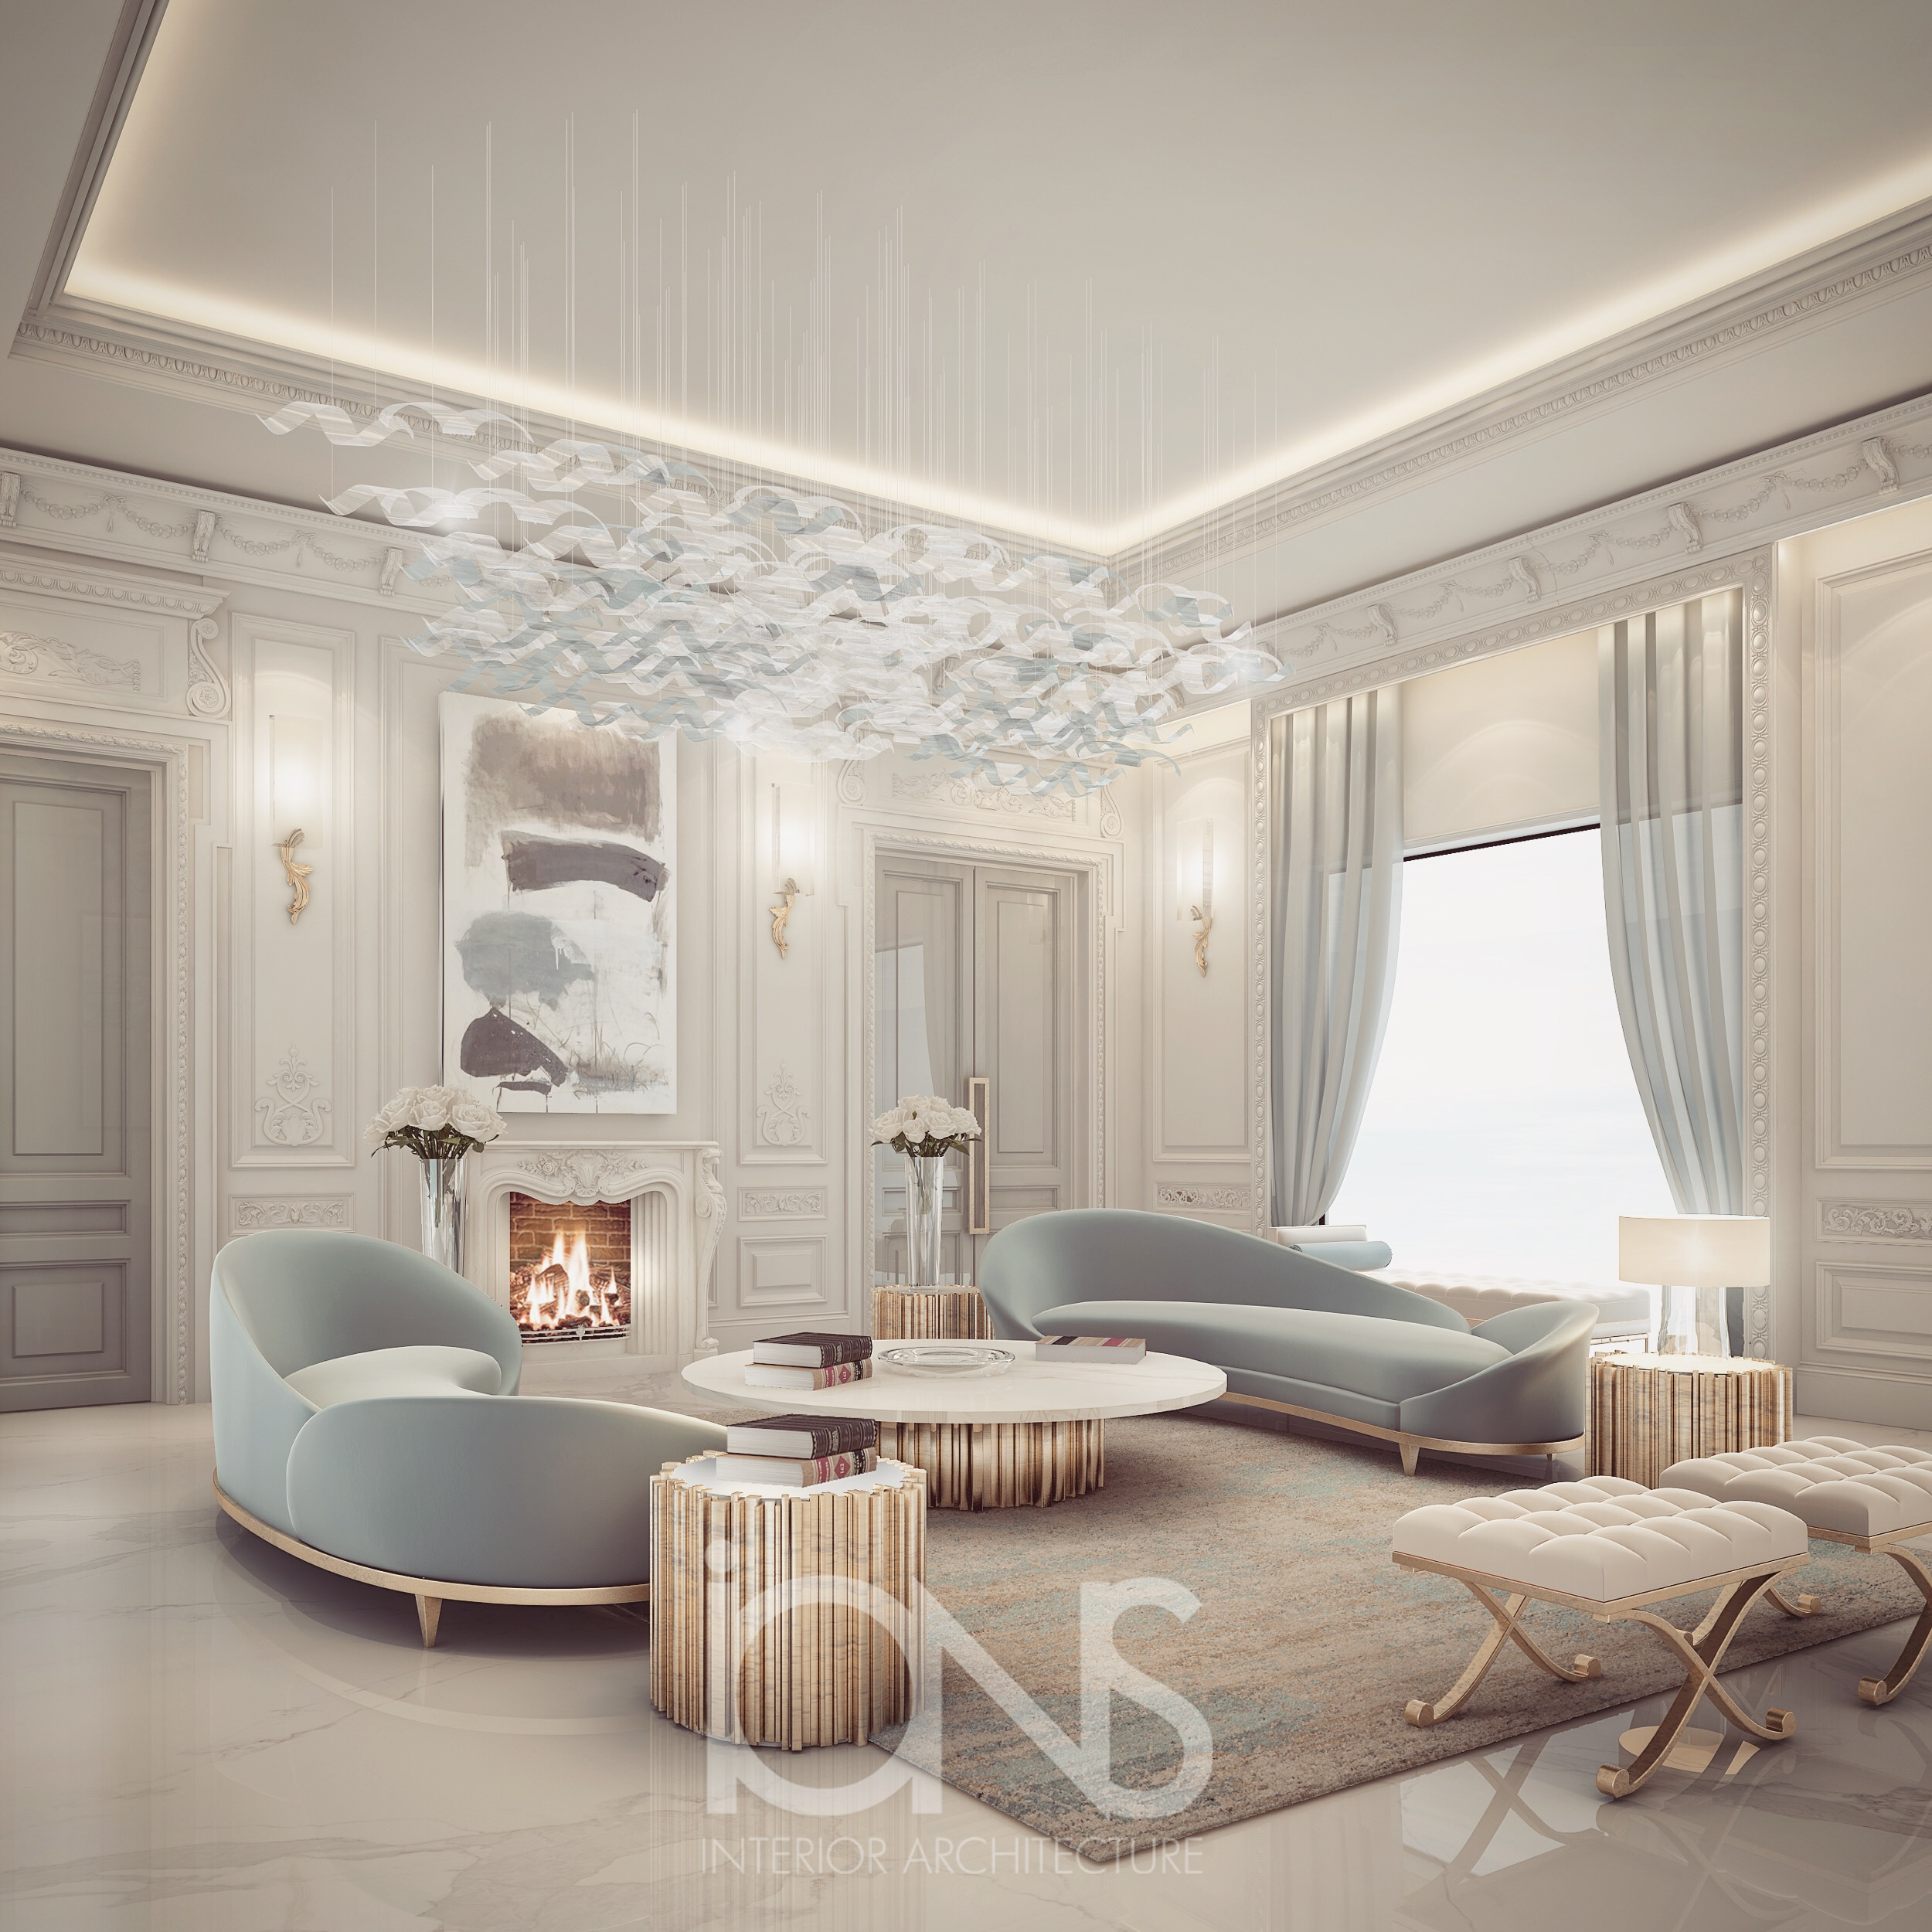 Ions Interior Design Dubai delightful sitting room design | ions design | archello